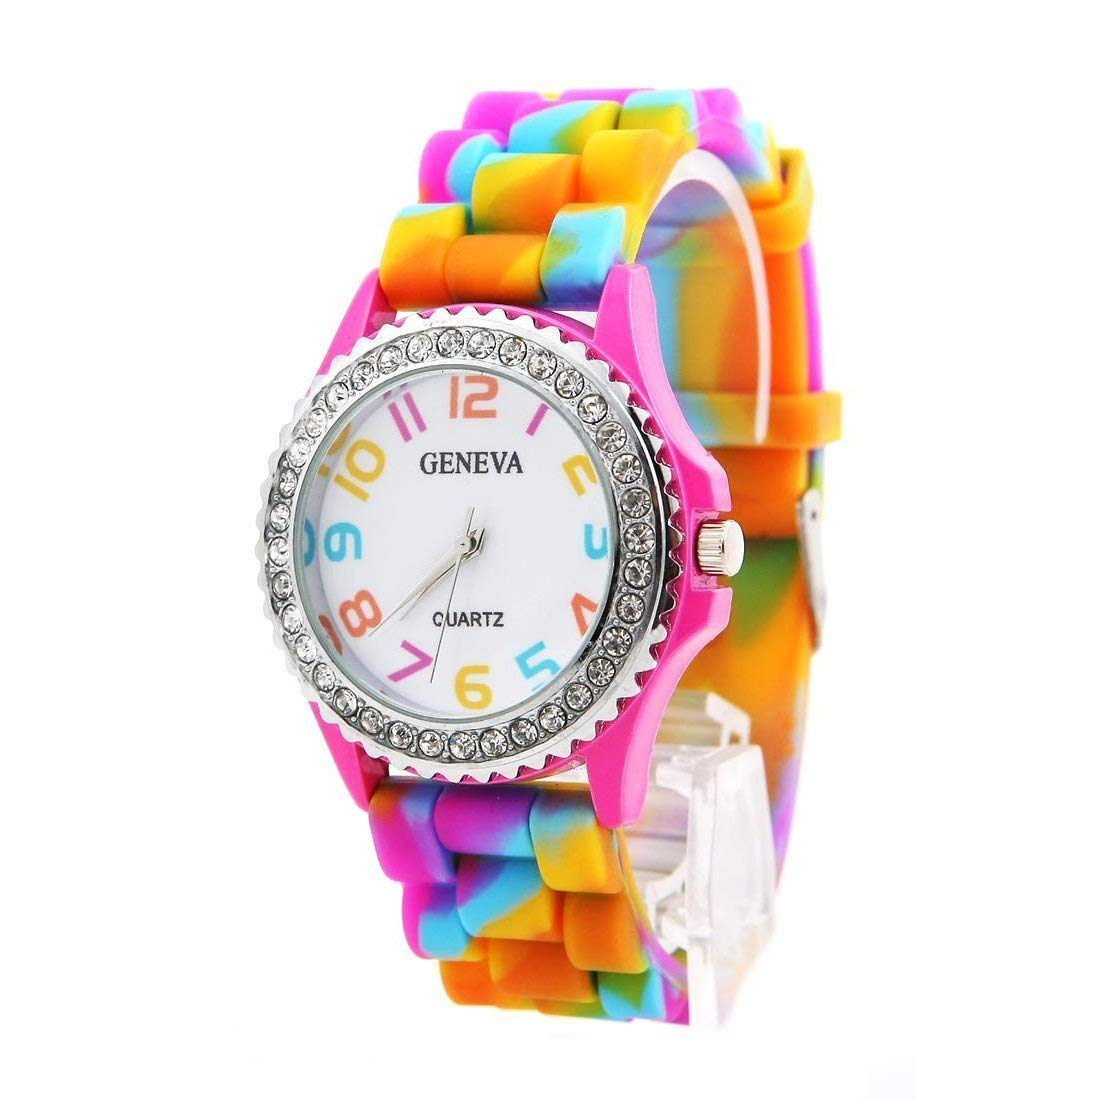 JewelTime Geneva Rainbow Crystal Rhinestone Watch Silicone Jelly Link Band